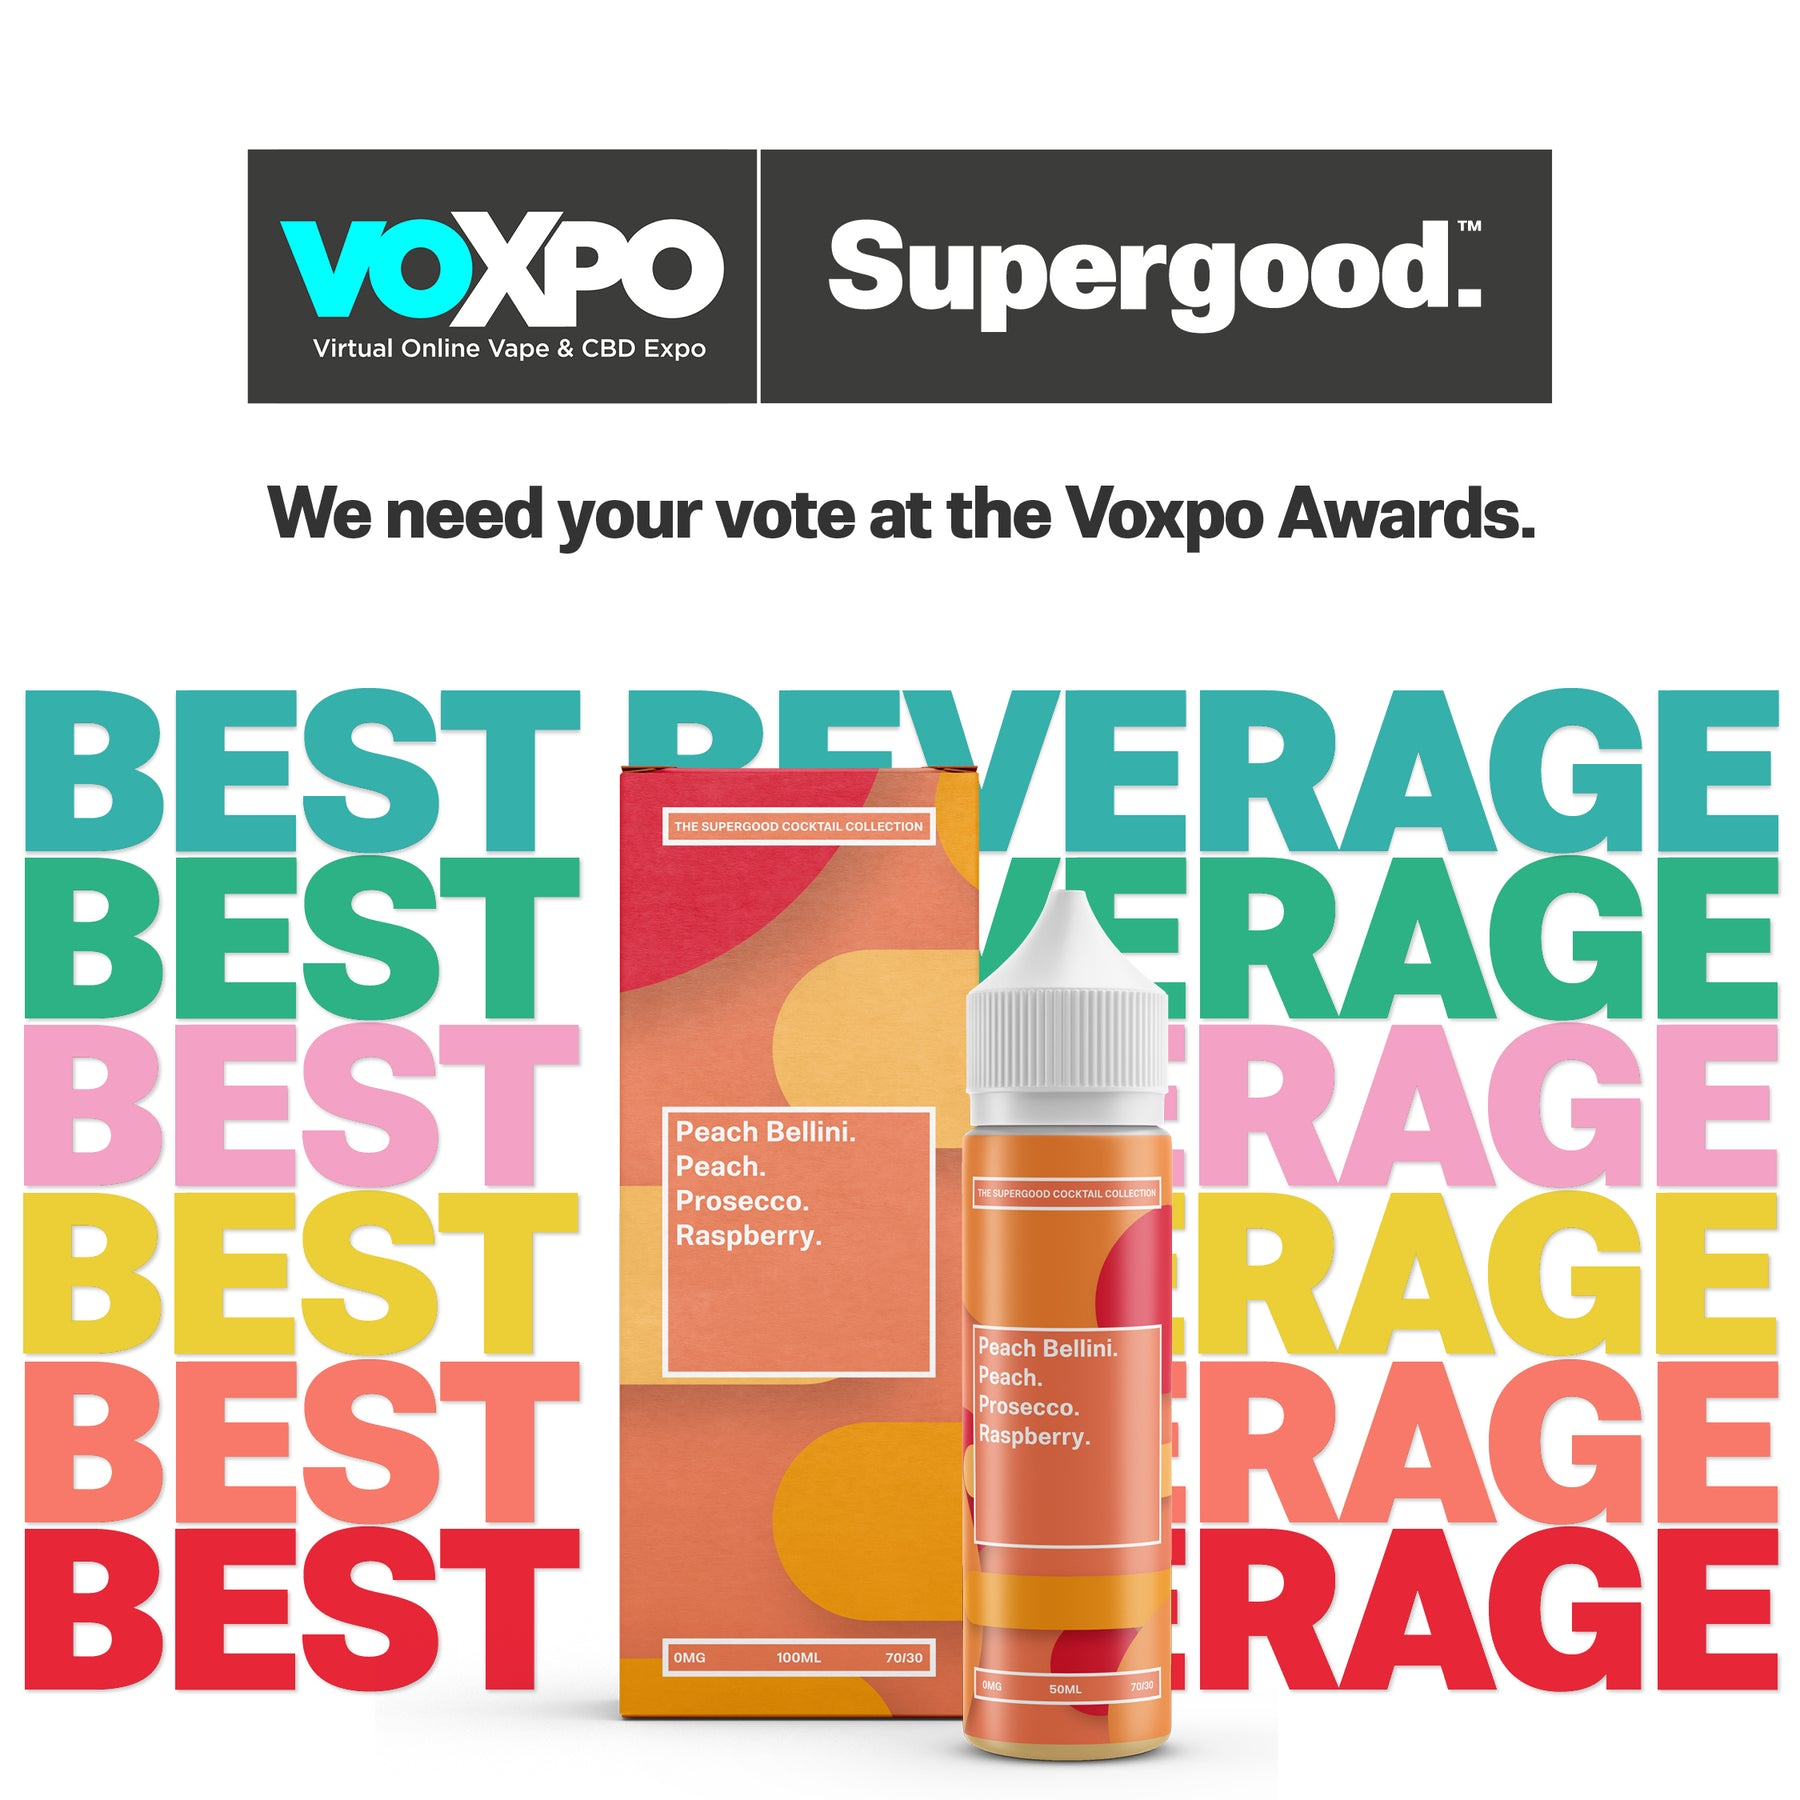 Voxpo Awards, Best Beverage.